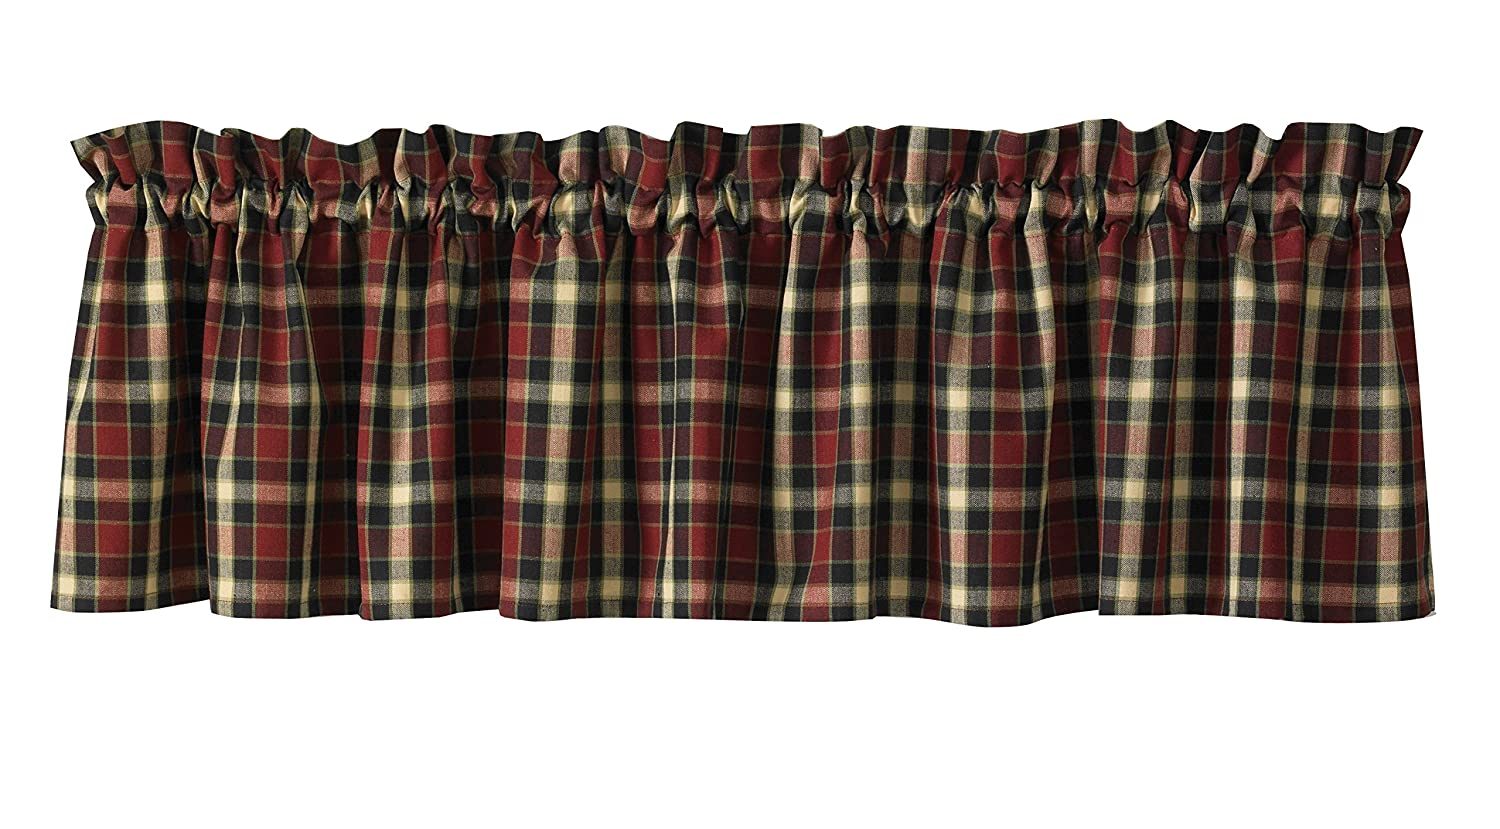 393-47 72 X 14 72 X 14 Scout Limited Inc Concord Valance